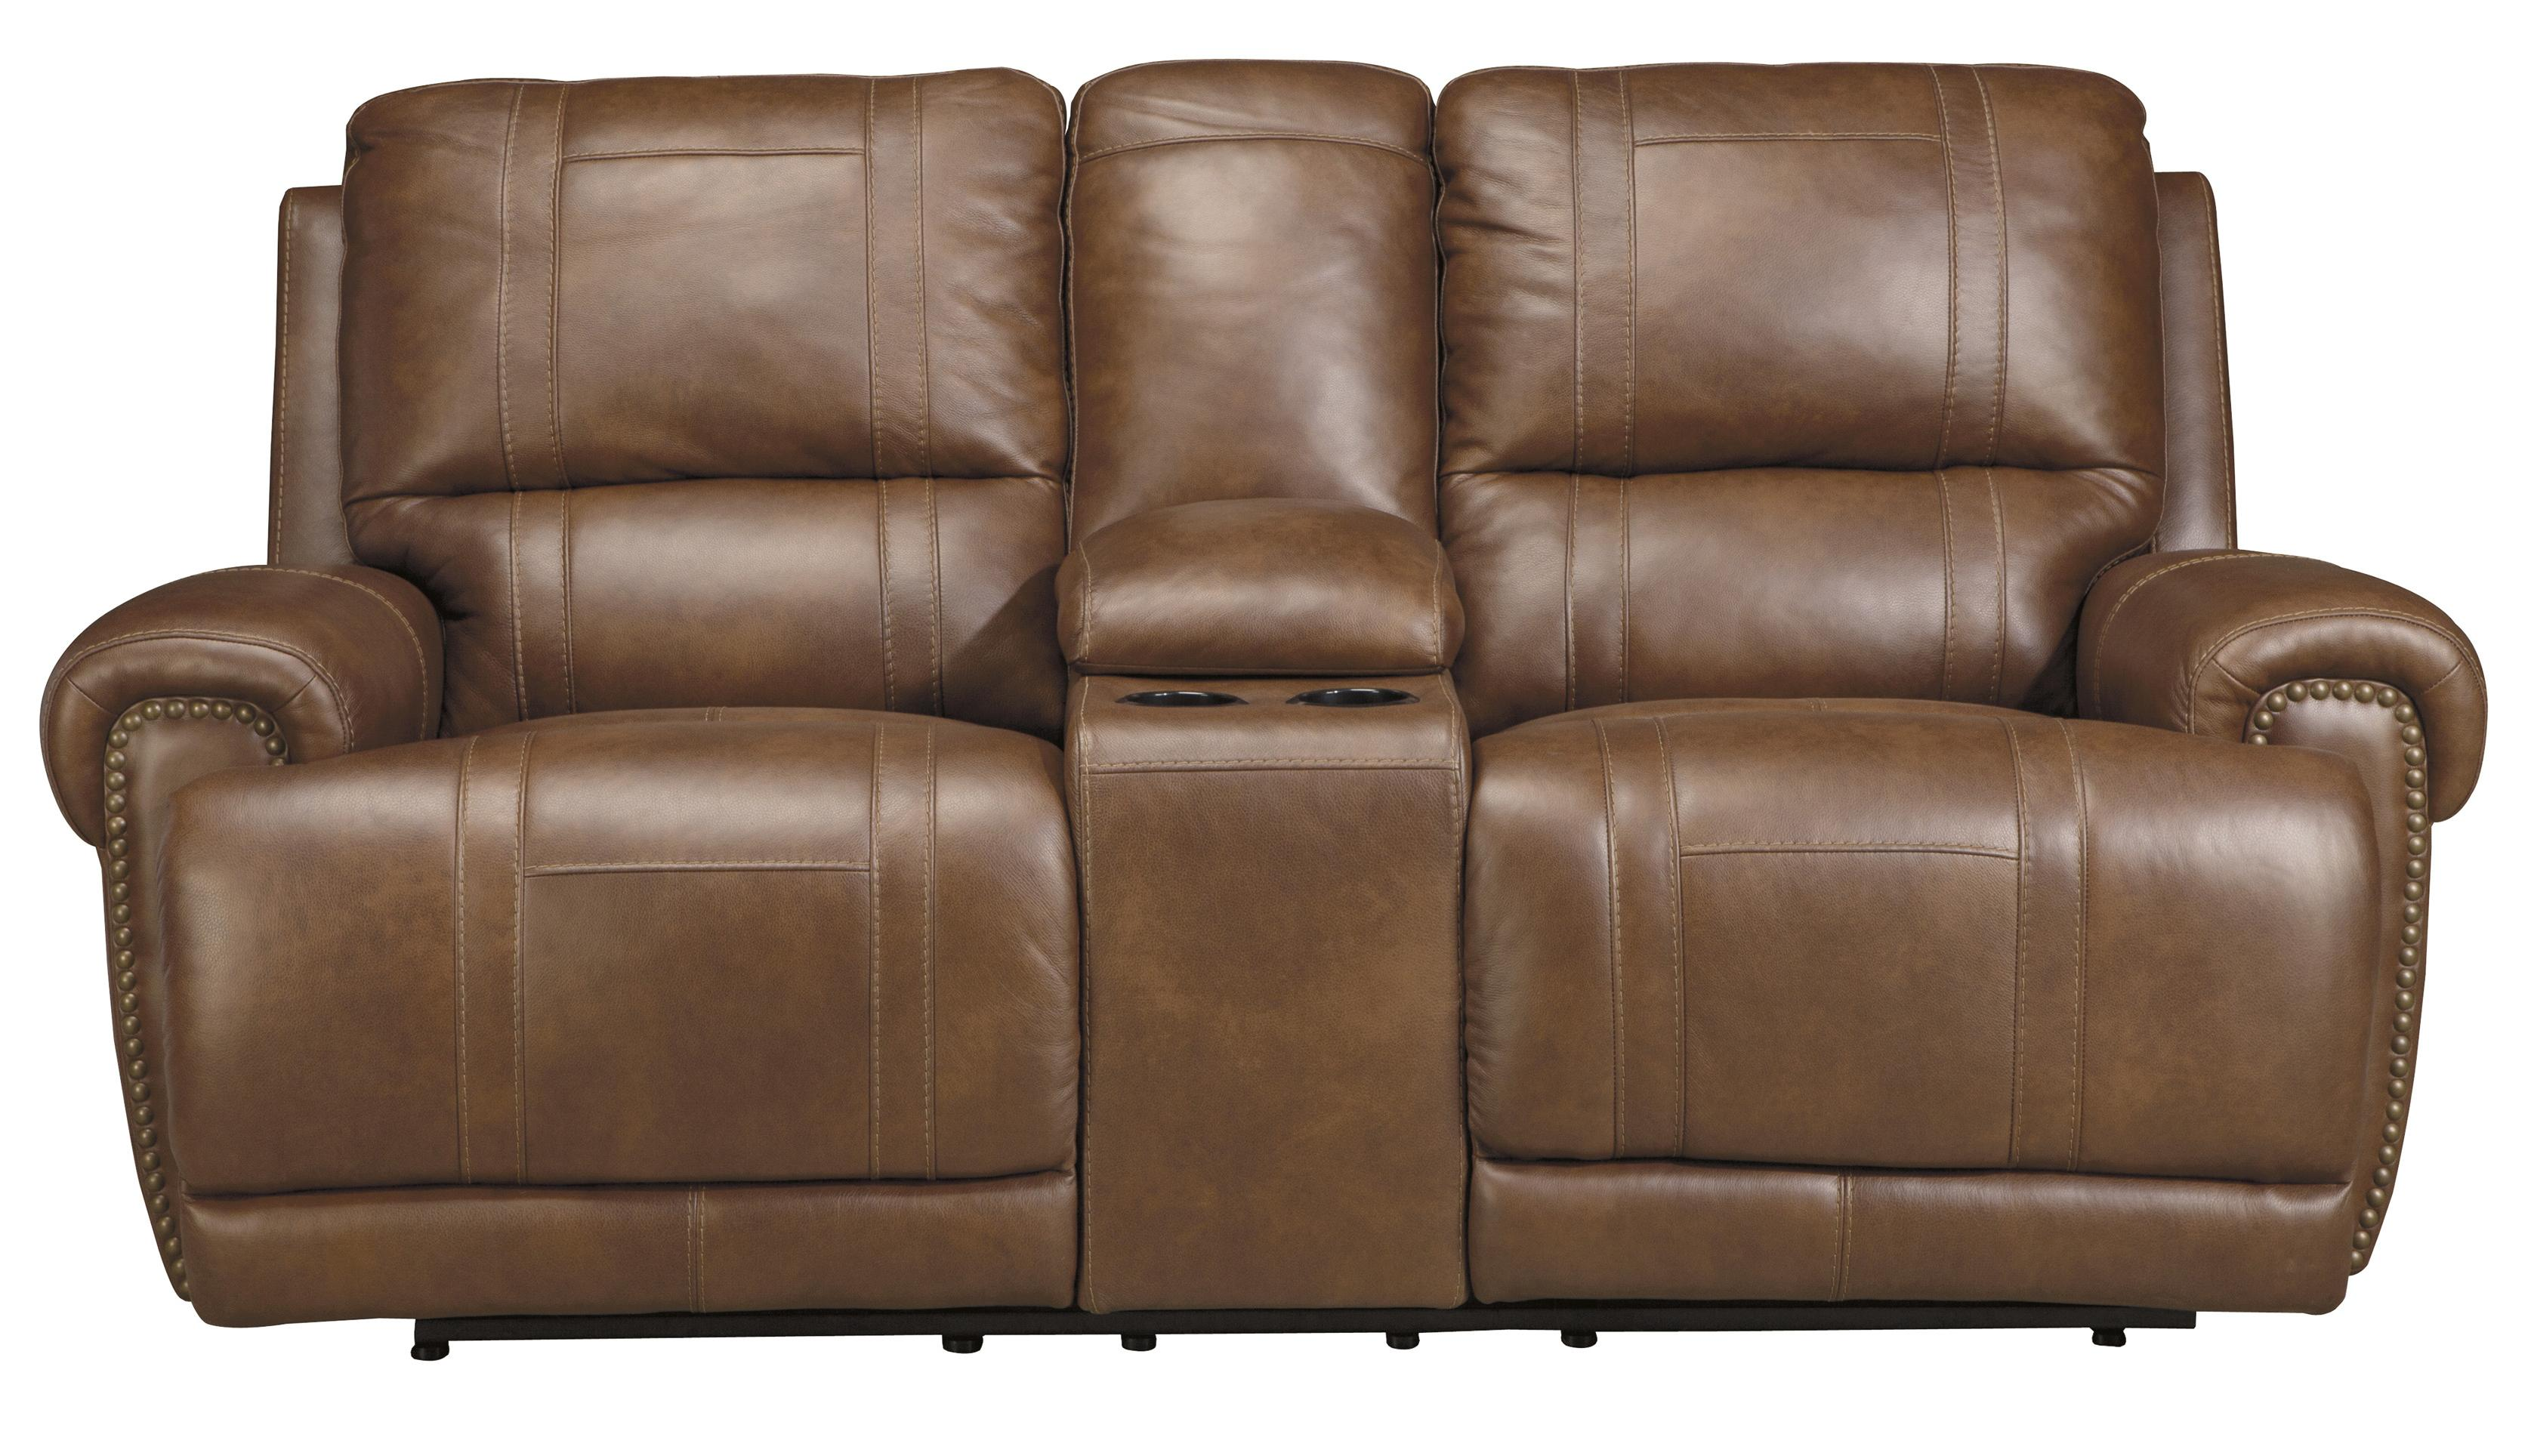 marlow reclining sofa loveseat and chair set bensen sleeper double recliner with console furniture